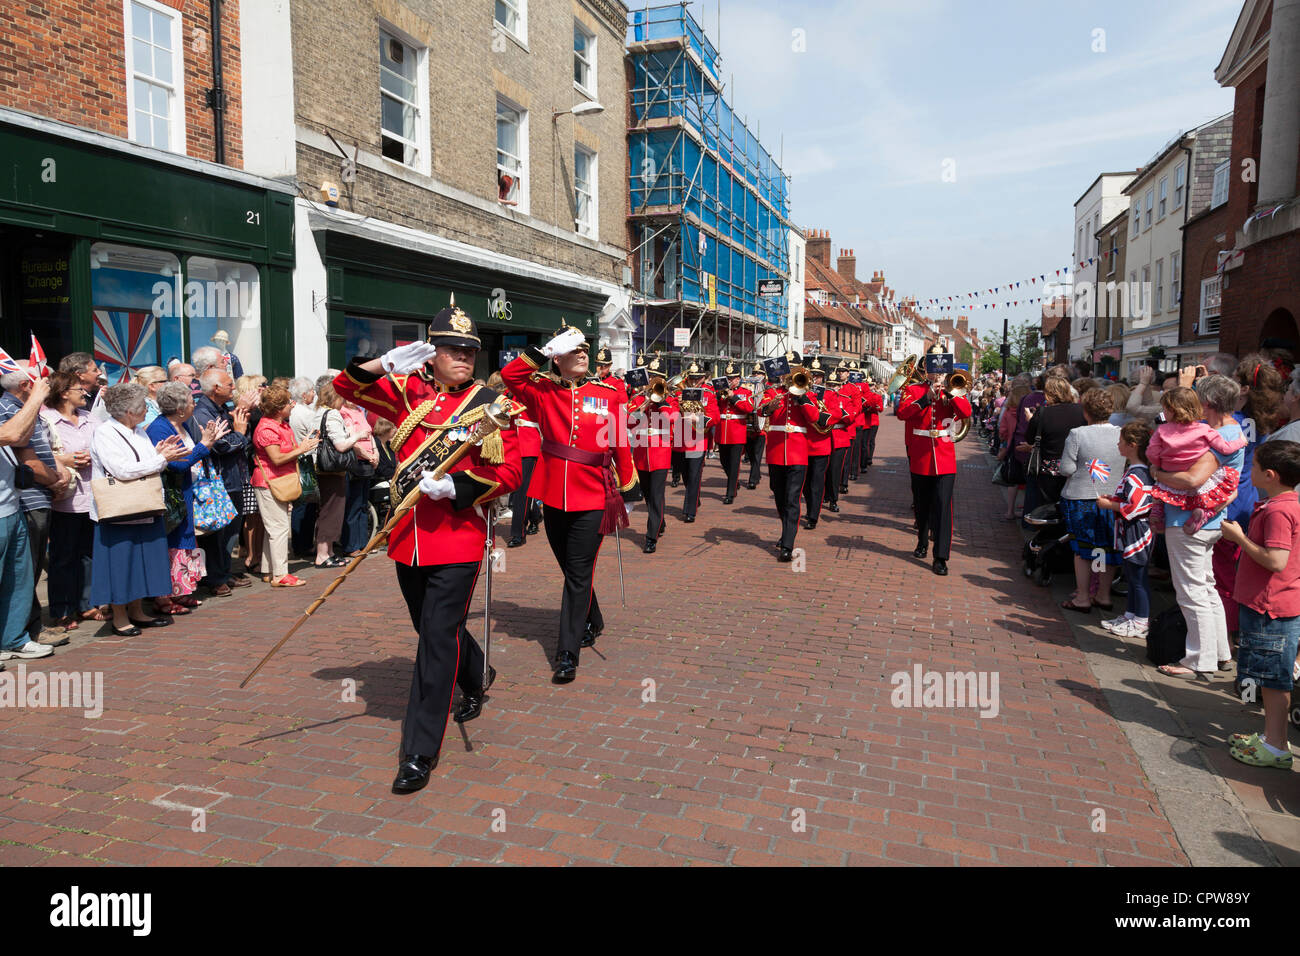 marching military banr in Chichester diamond jubilee celebration procession - Stock Image